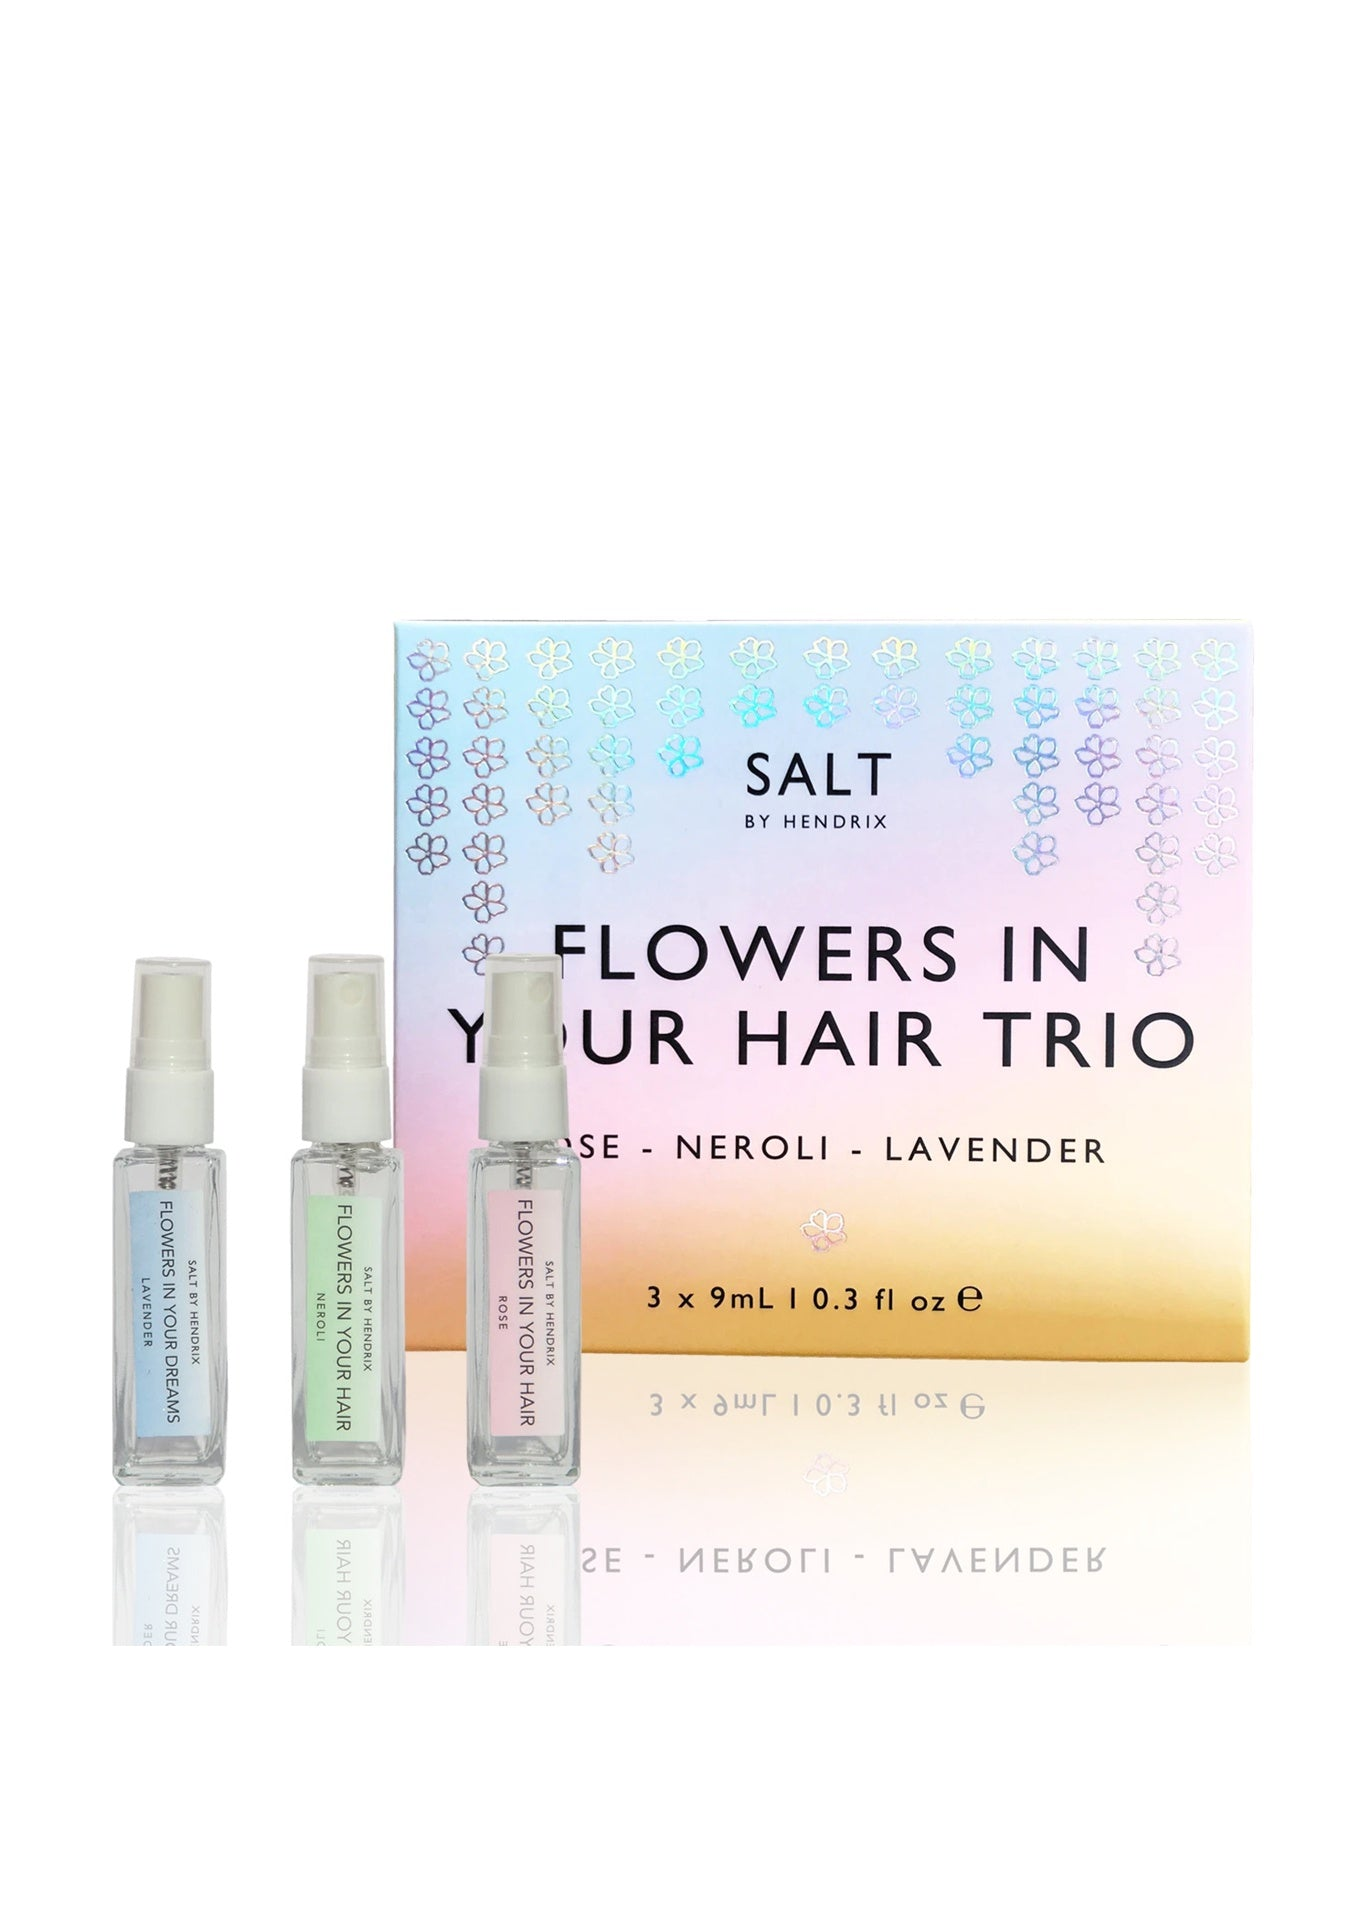 SALT BY HENDRIX Gift Set - Flowers In Your Hair Trio